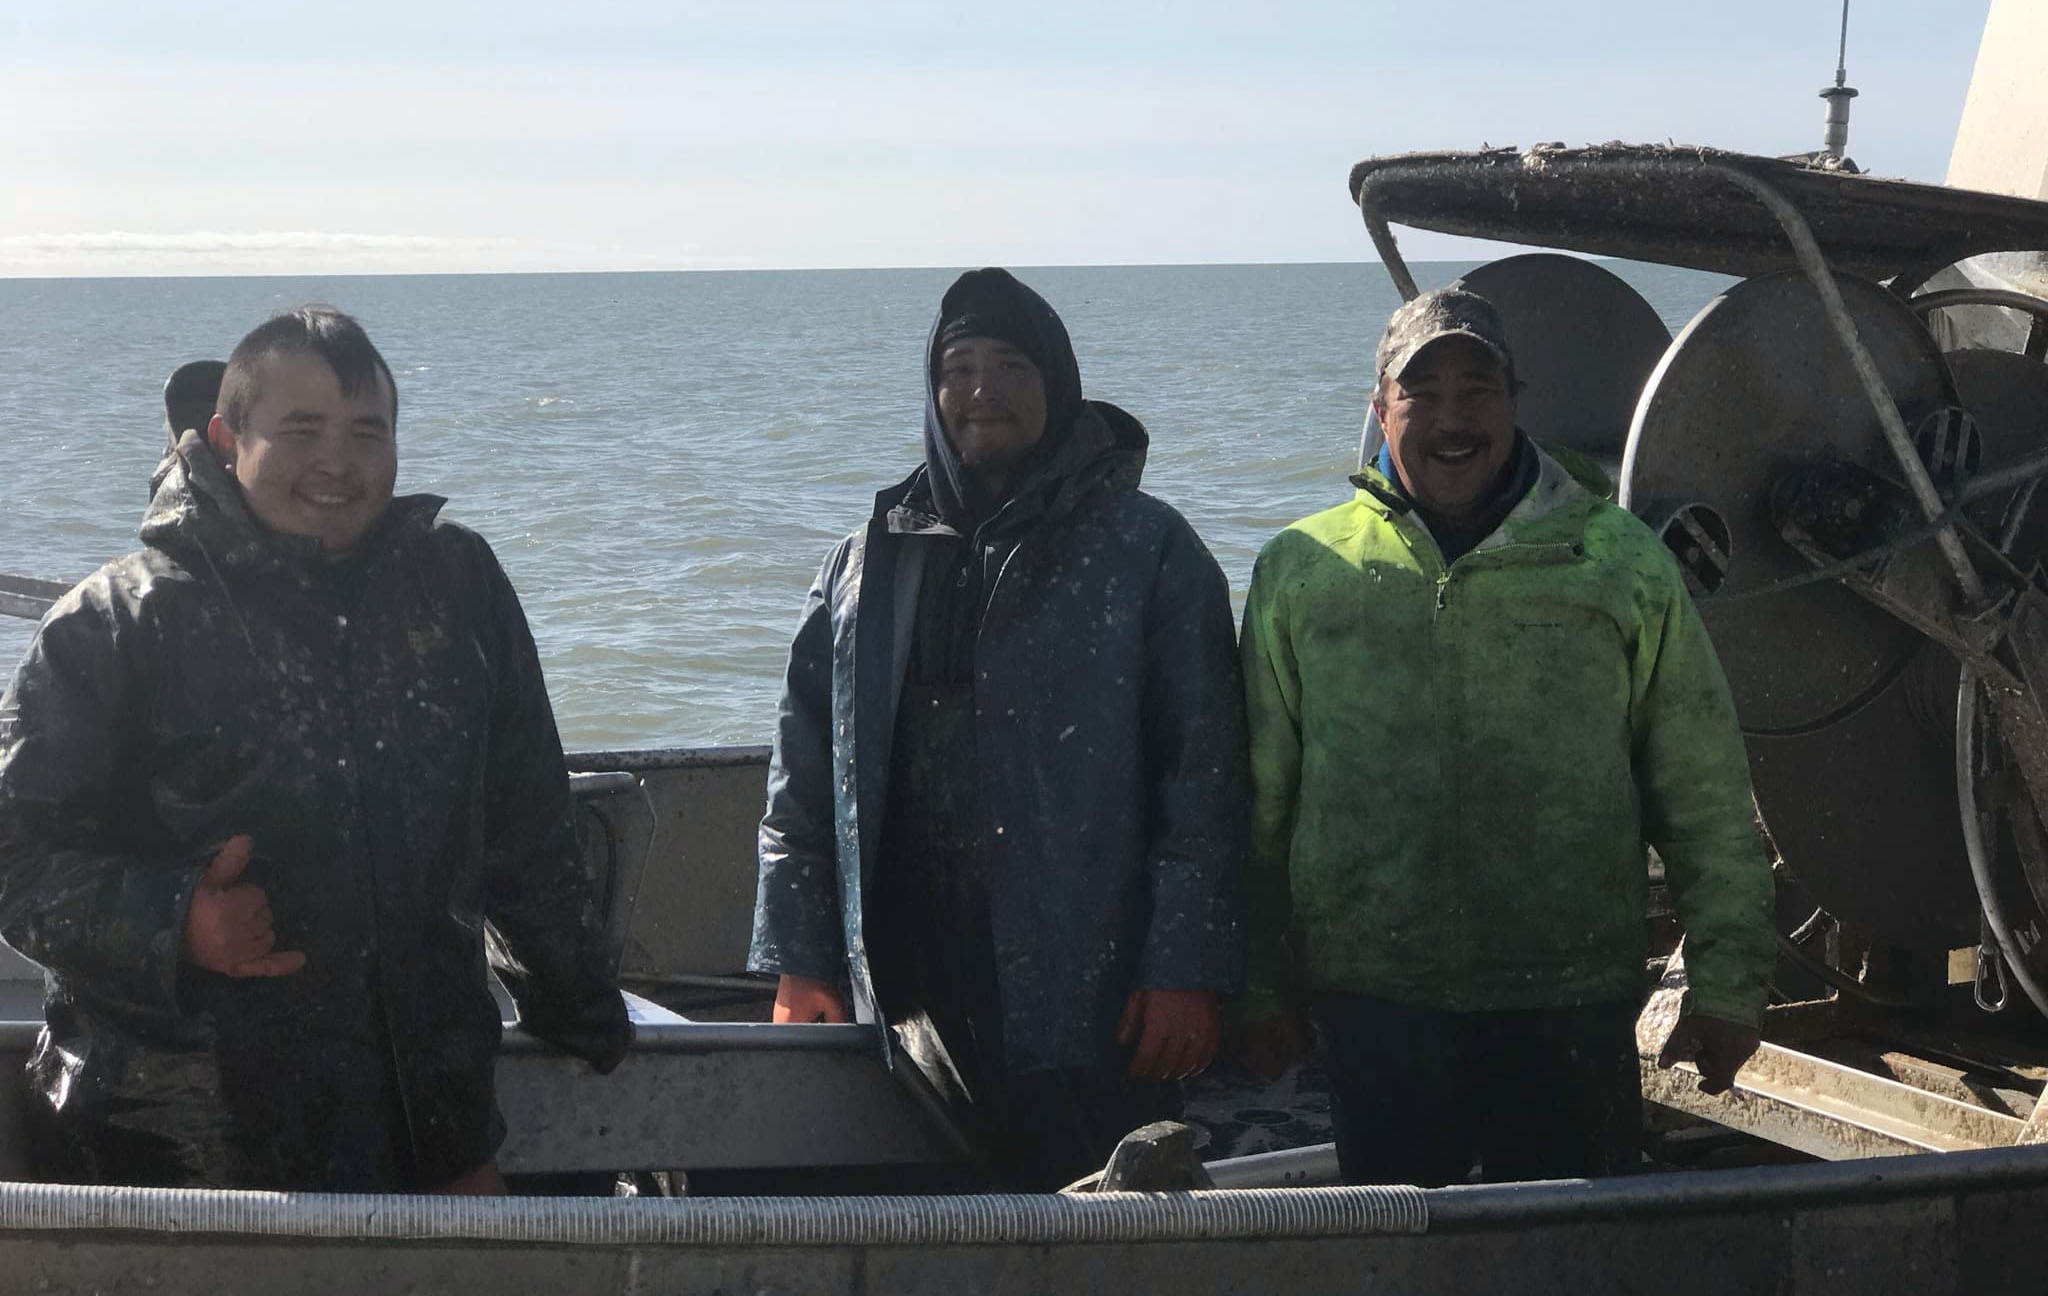 Woods, right, and his crewmates take a break from fishing the Bering Sea. Photo courtesy of Frank Woods.